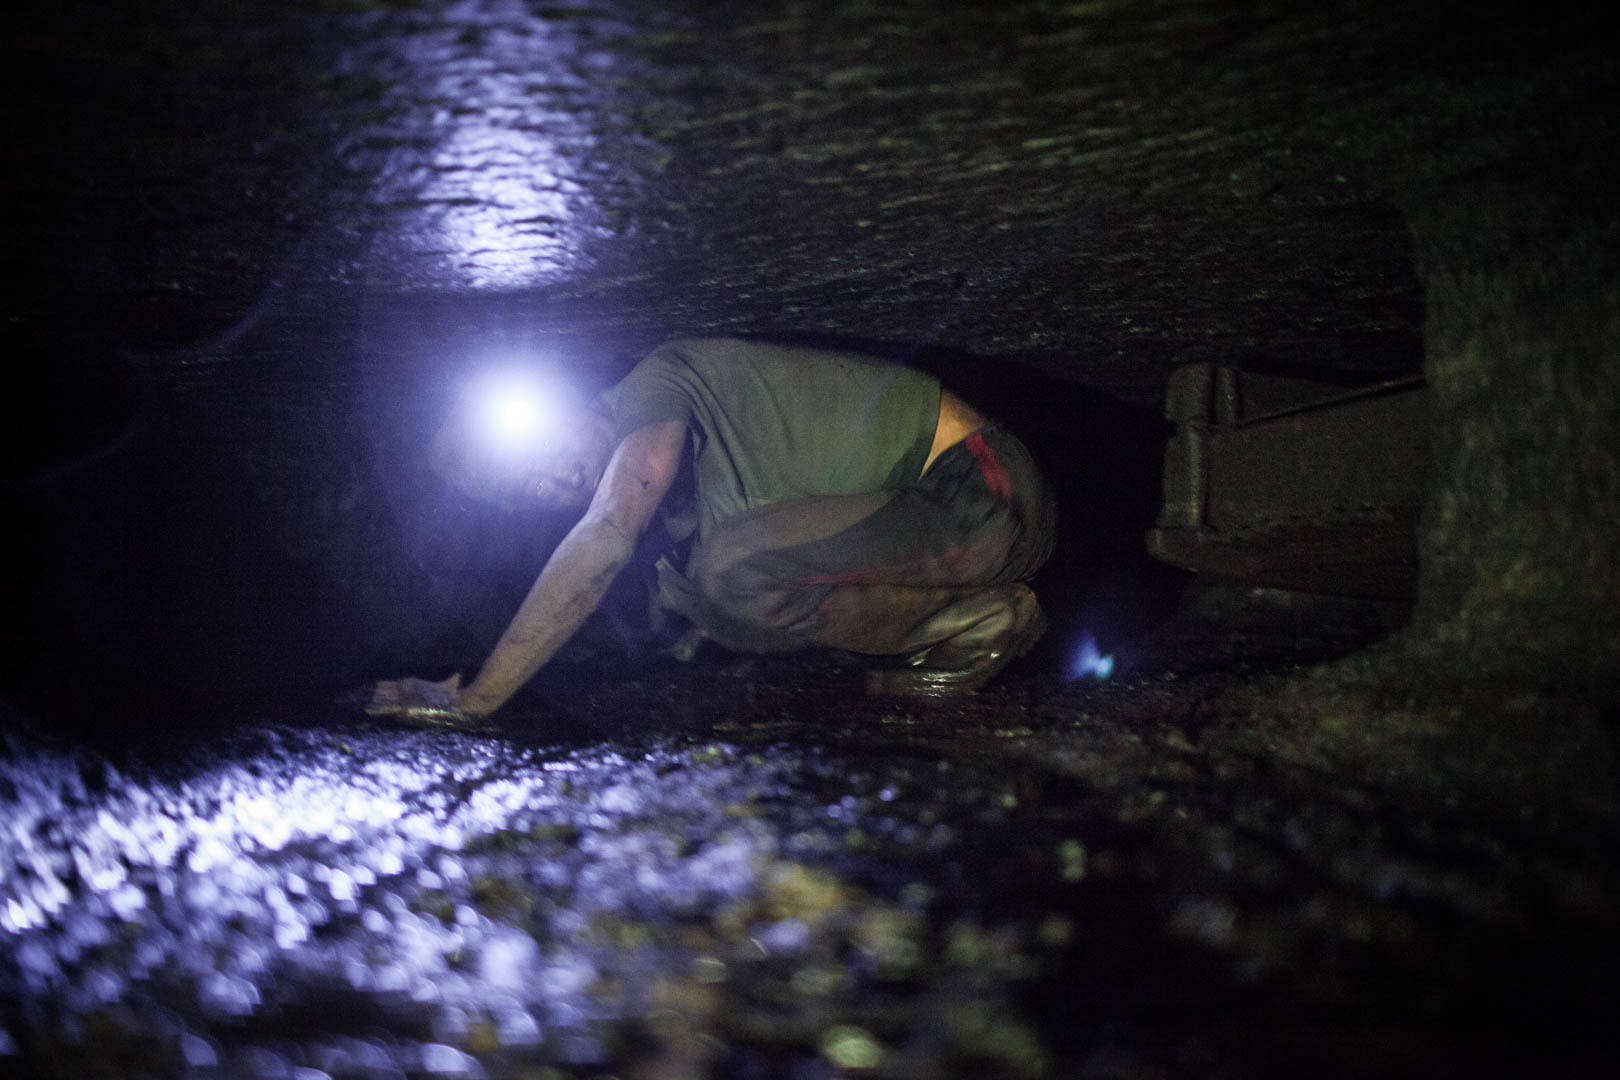 An Indian worker robs through a tunnel in one of the underground mines. Due to the illegal nature of the tunnels, the absence of government, and the greed of the mine owners, they lack any ventilation, stabilization or illumination.